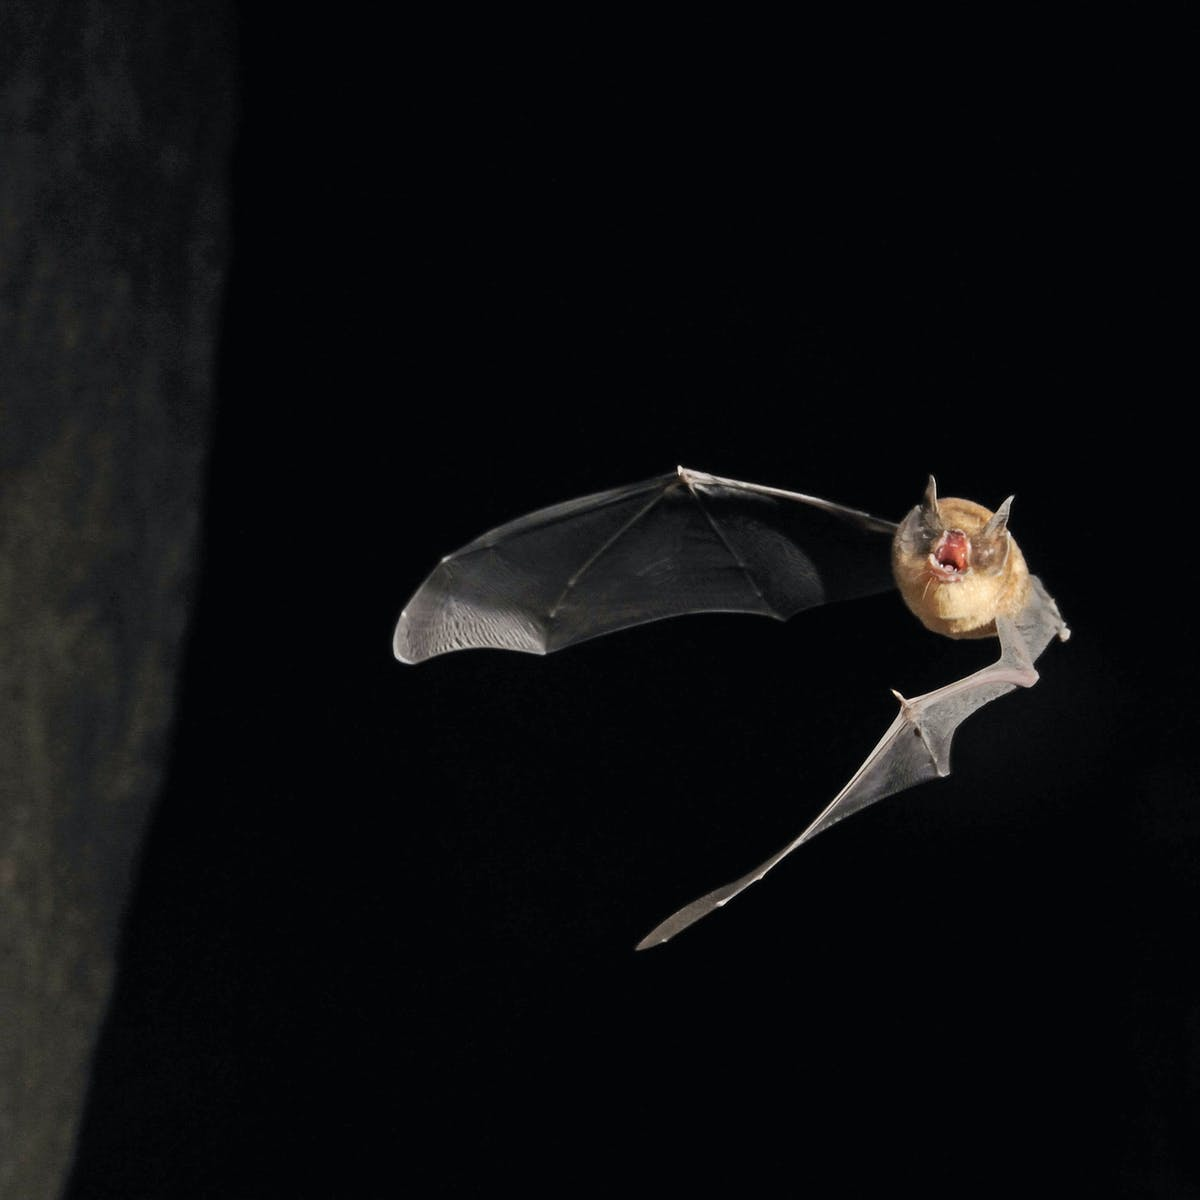 Pitch perfect: small bats squeak higher, but not due to size